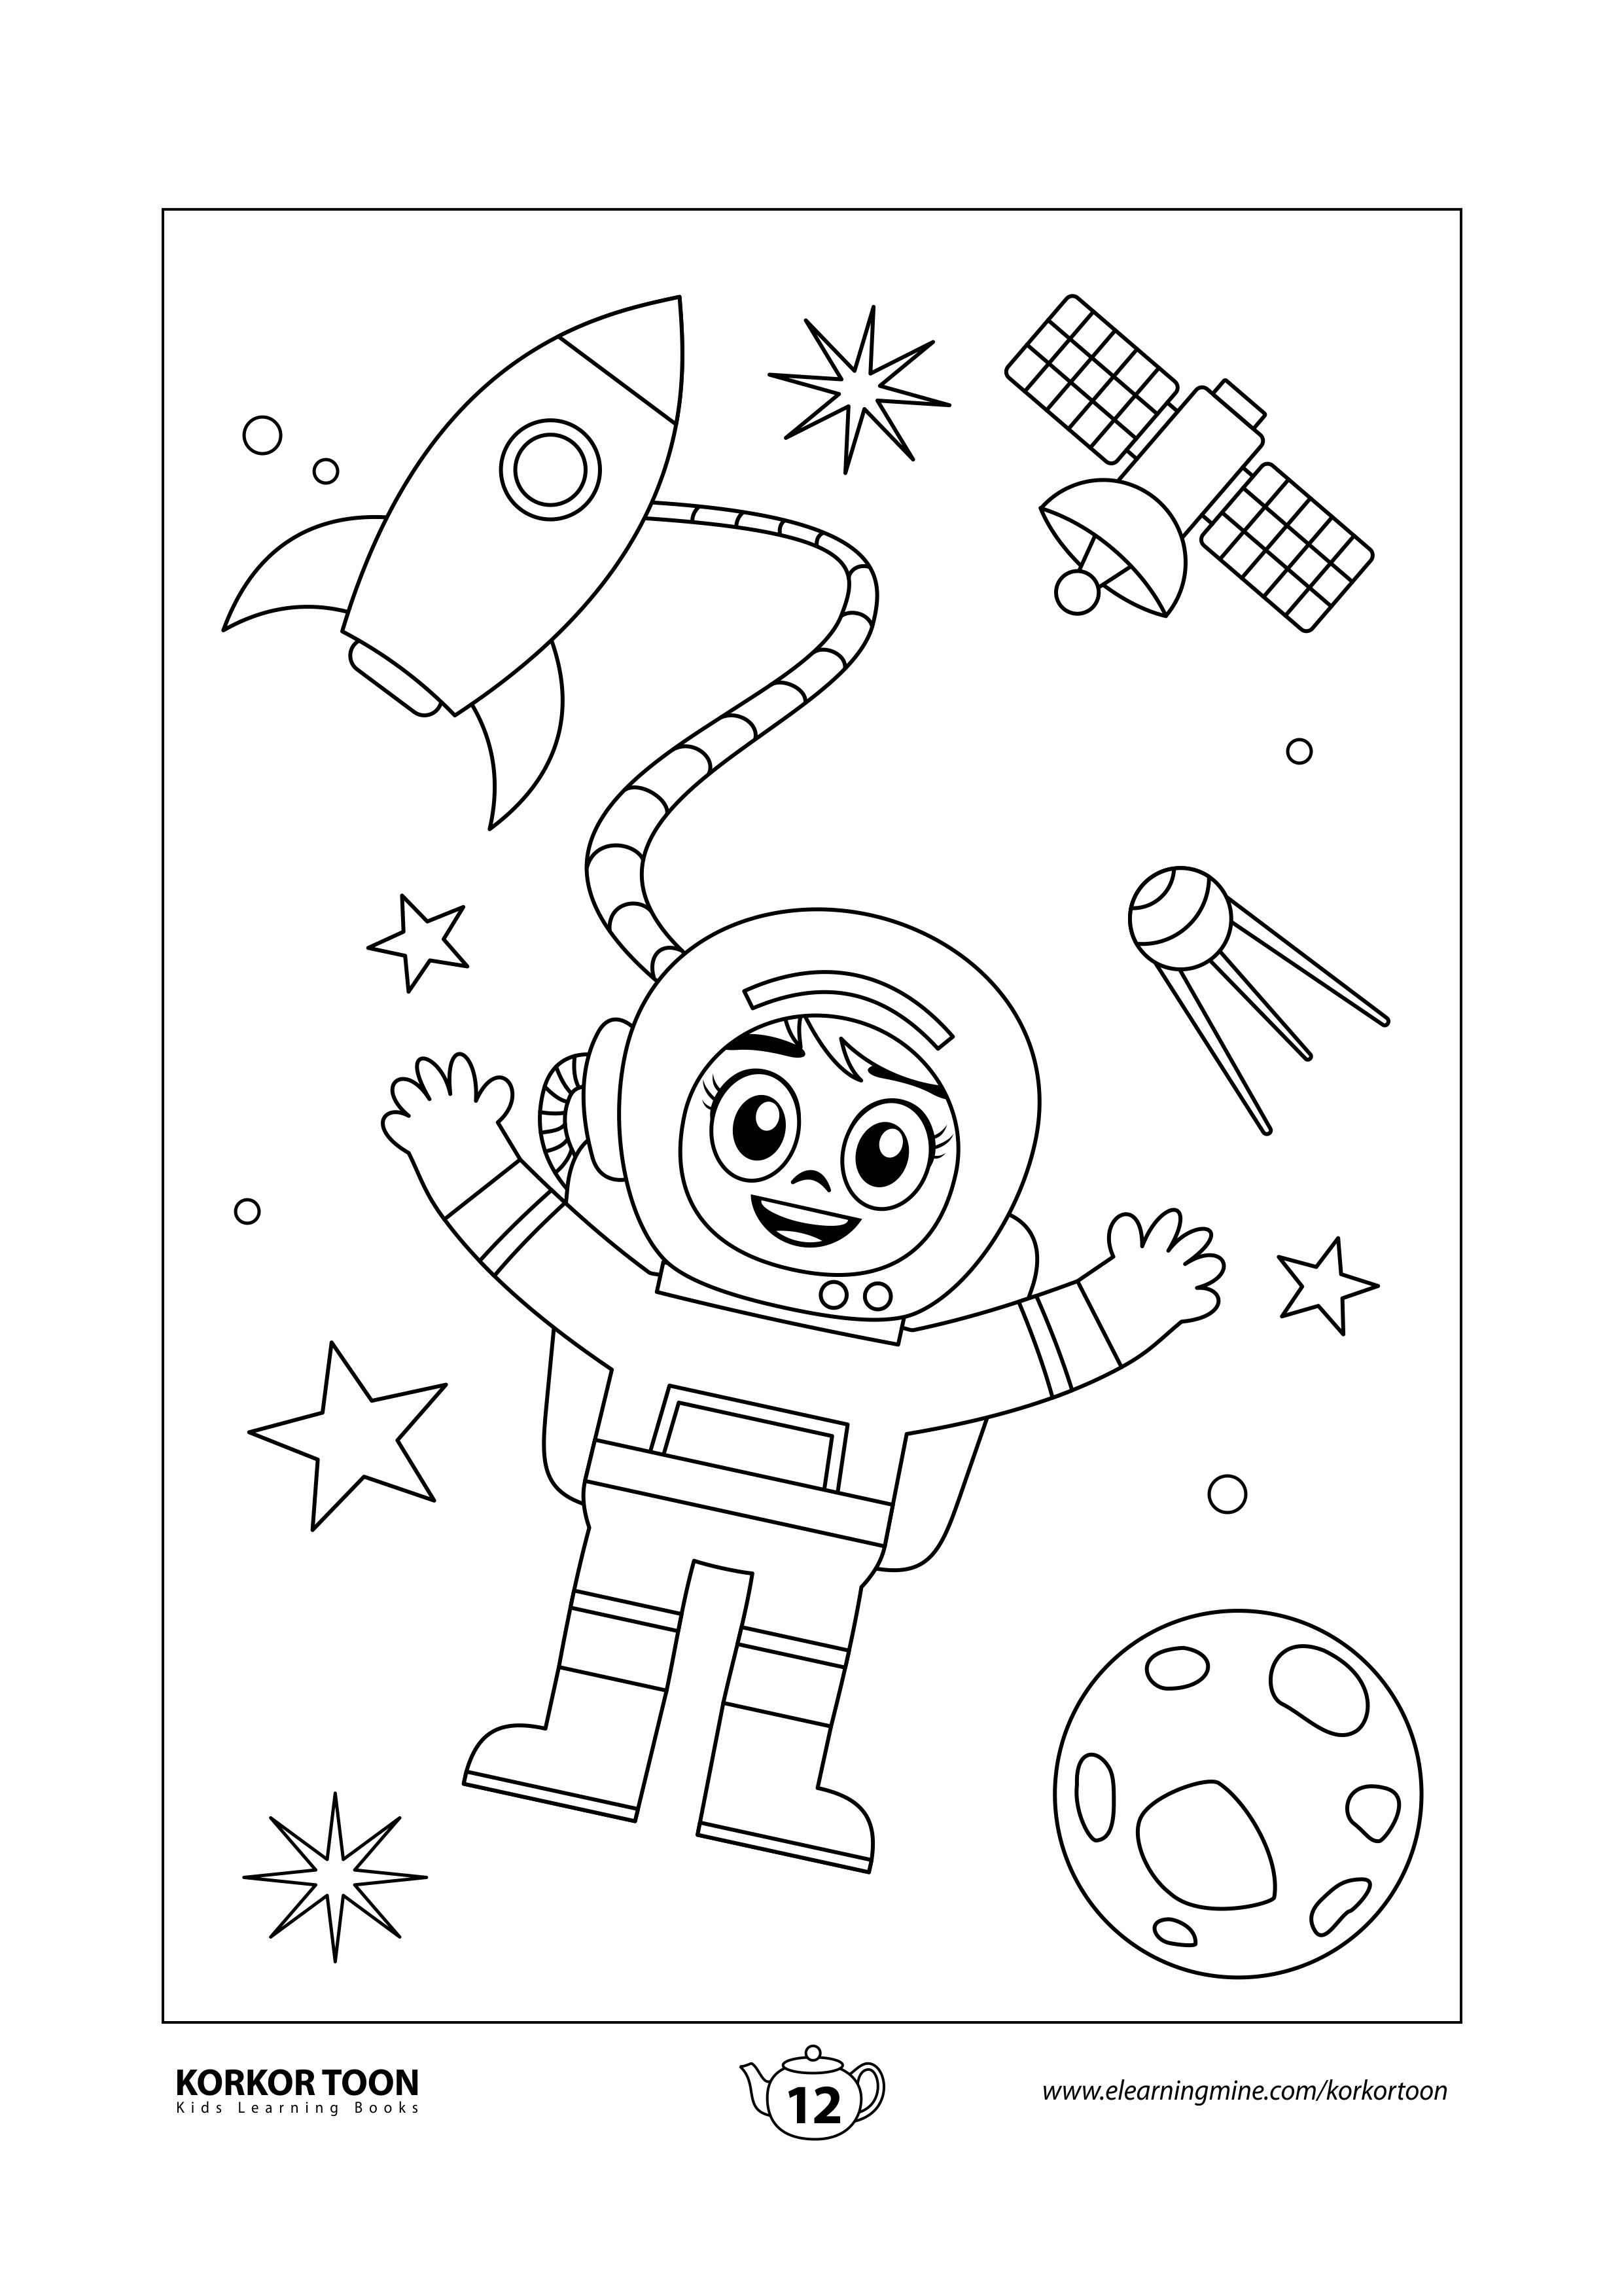 Solar System Coloring Book For Kids Space Page 12 Coloring Books Kids Coloring Books Printables Free Kids